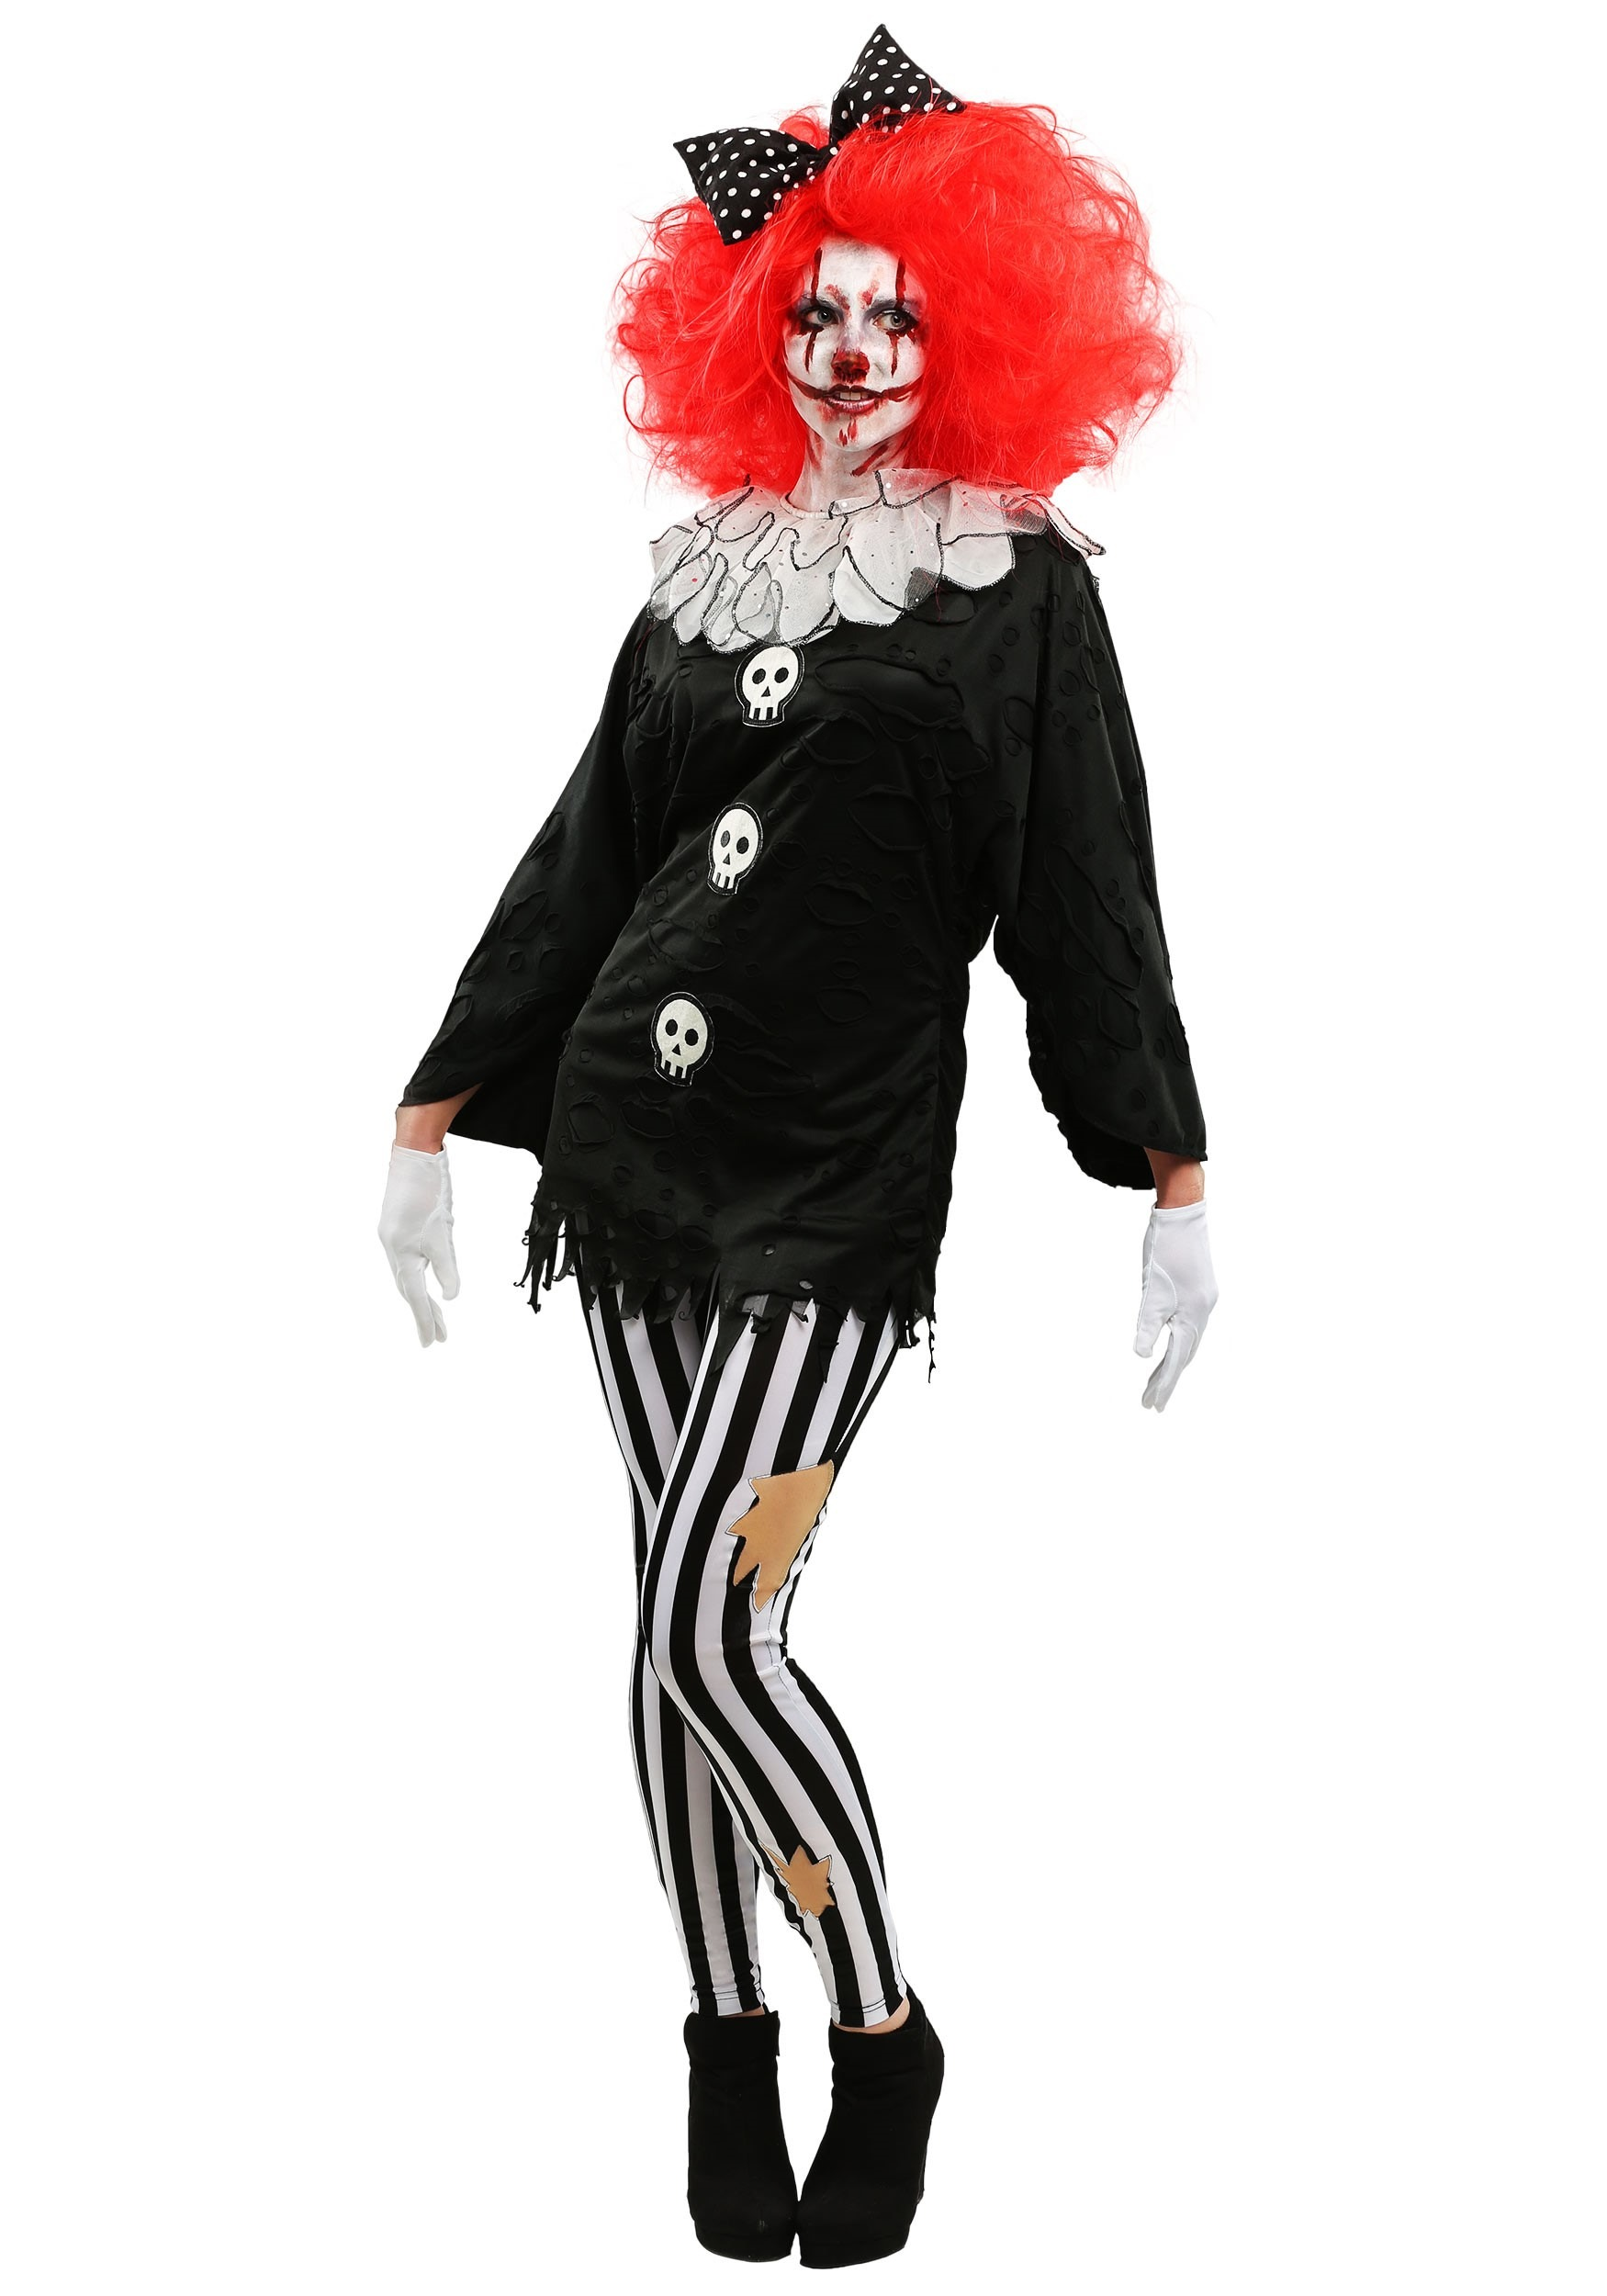 Frightful Clown Womens Costume  sc 1 st  Halloween Costumes & Frightful Clown Costume for Women